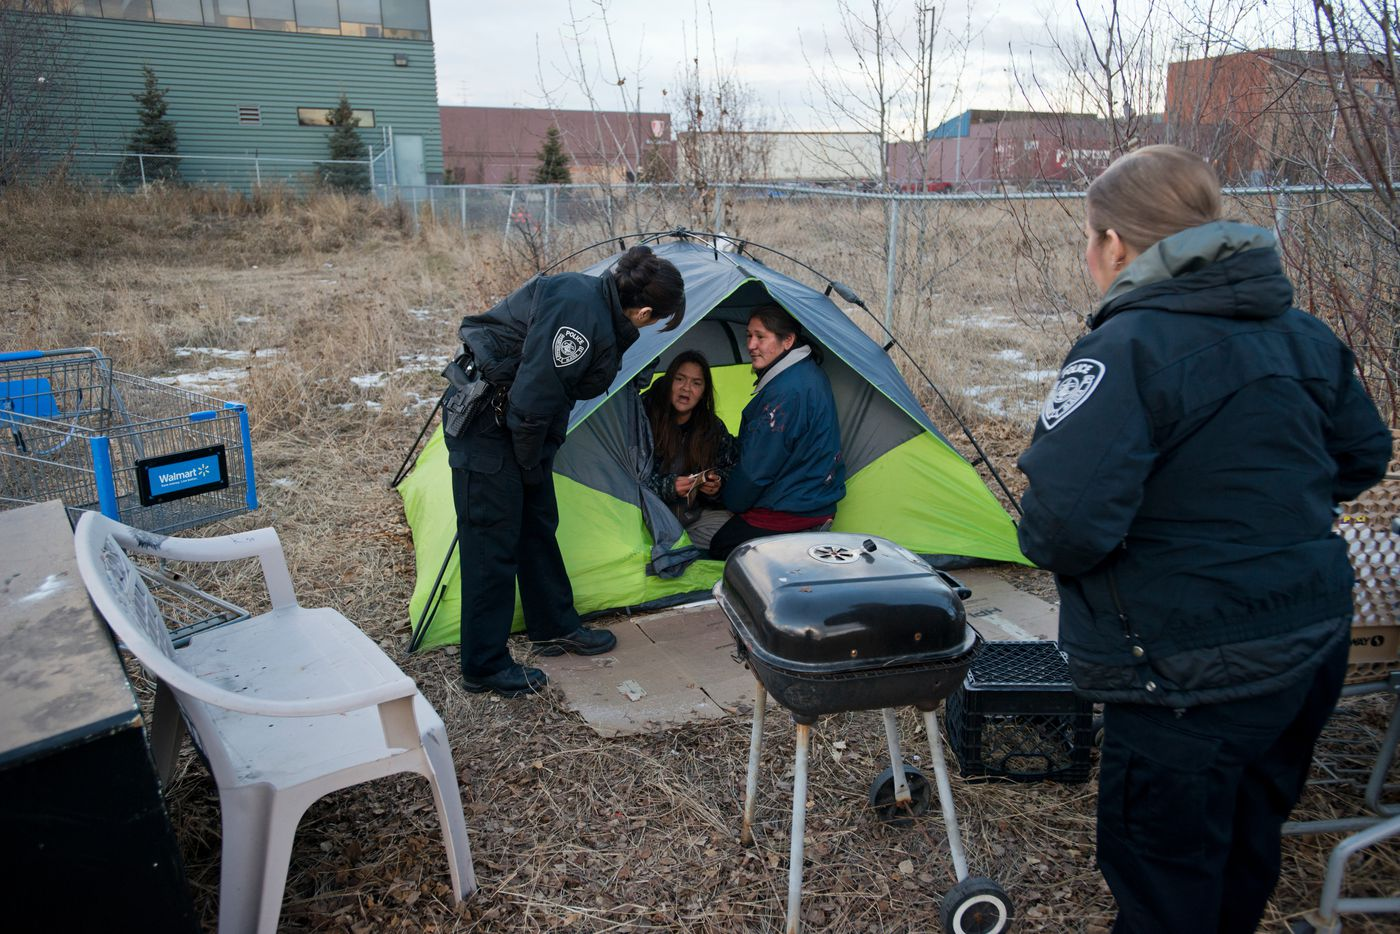 Anchorage Police officers Sally Jones, left, and Natasha Welch talk with campers in an empty lot on 33rd Avenue in Midtown. The campers were warned about trespassing, but Jones said they'd have until the following morning to clear out. Photographed on Friday, November 7, 2014. Marc Lester / ADN